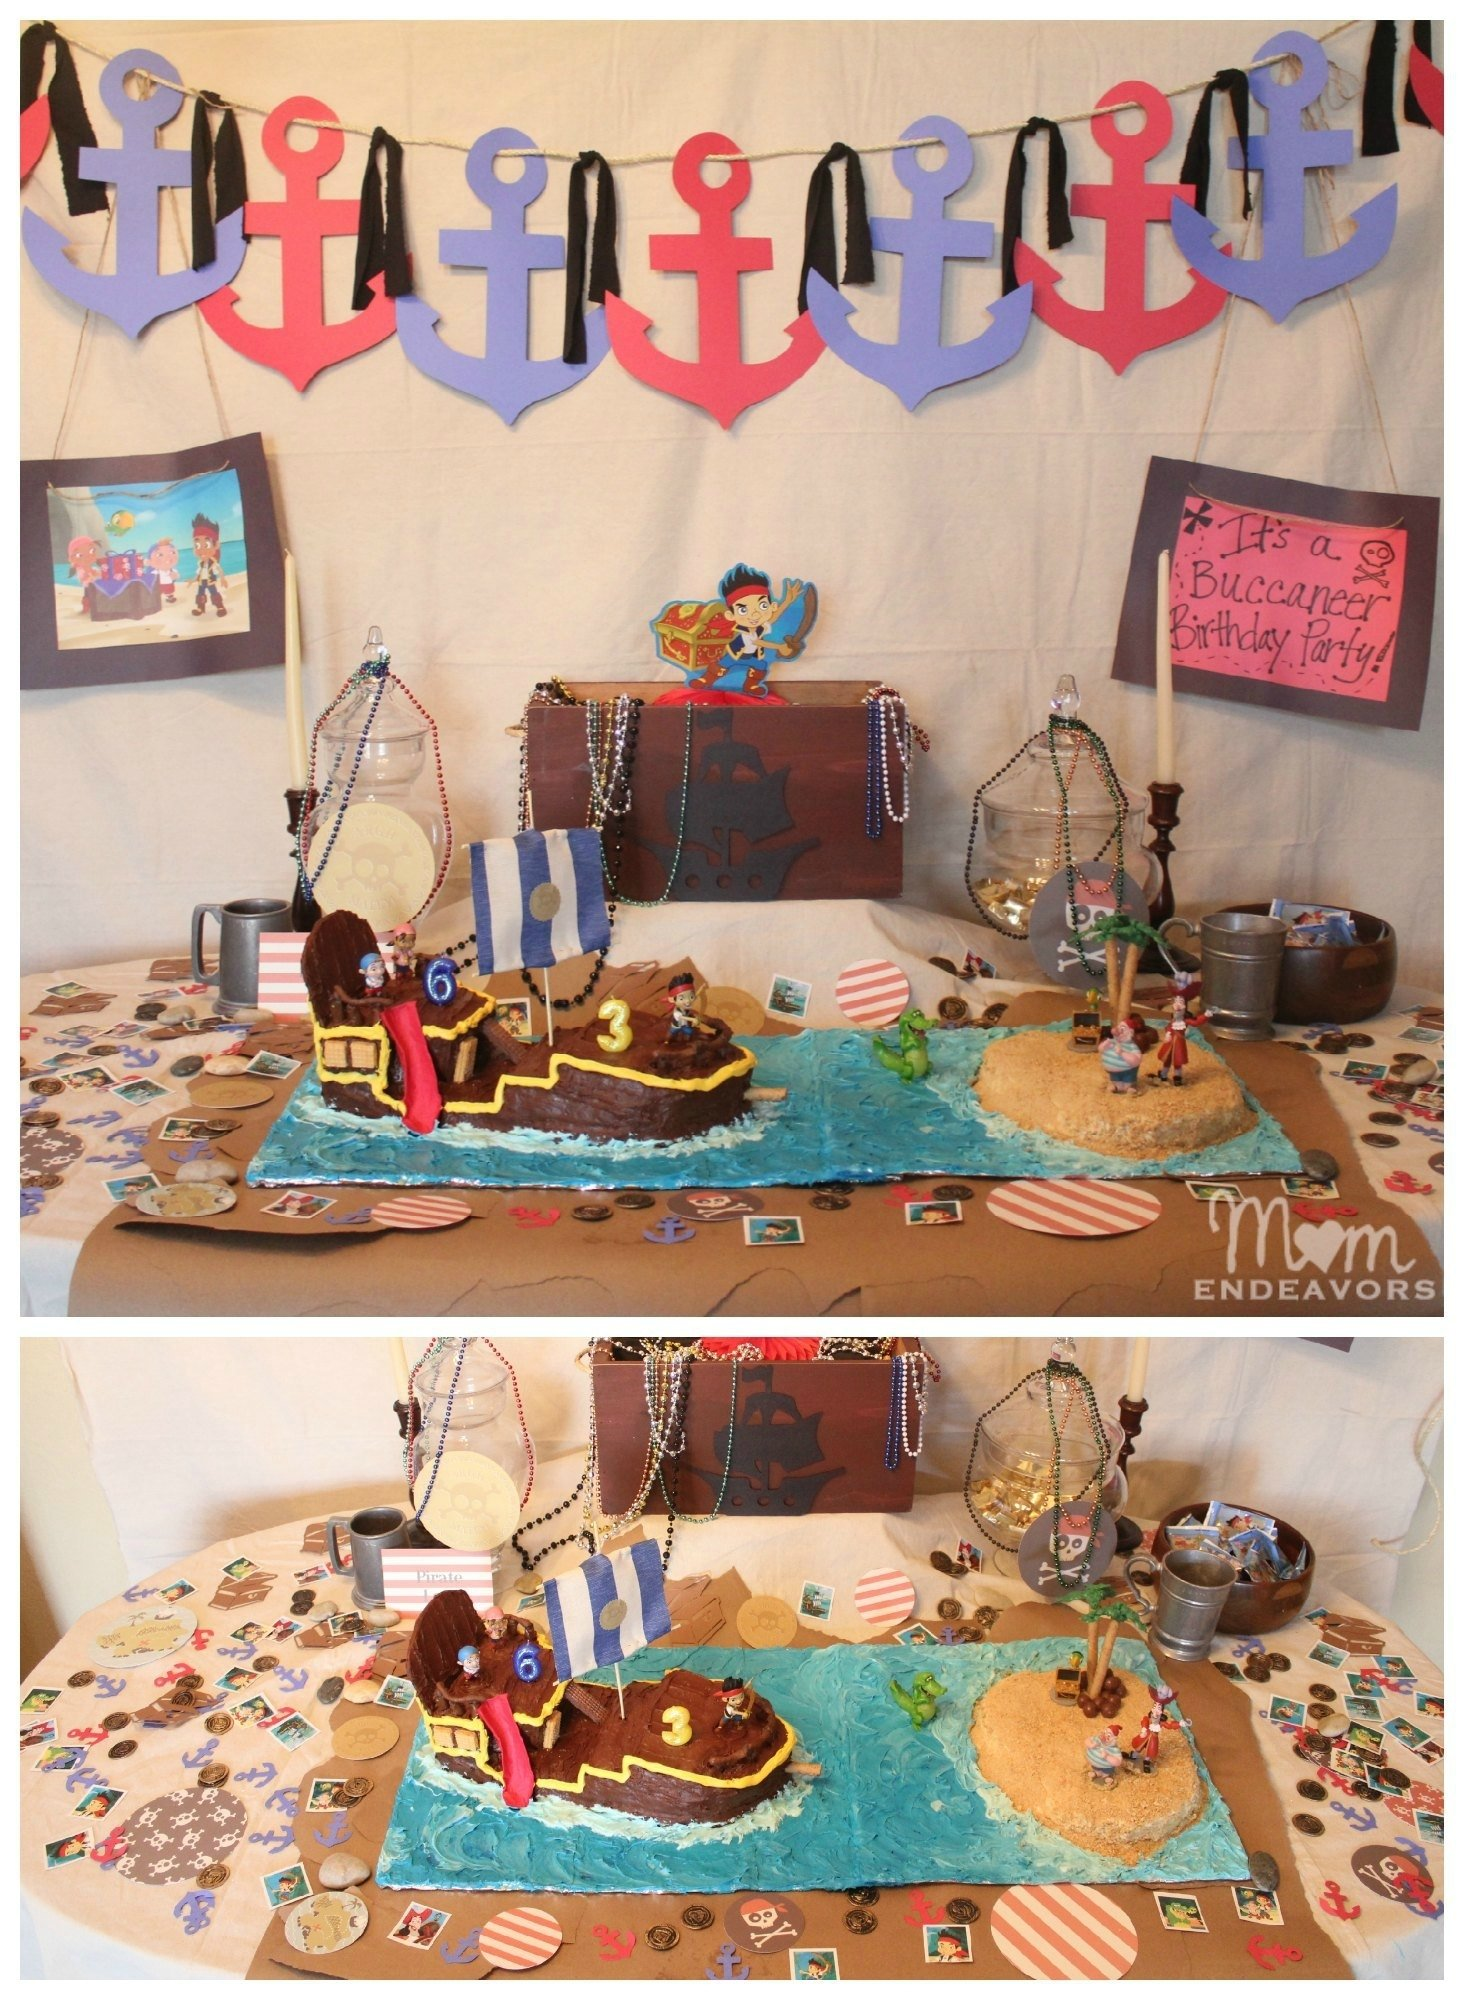 10 Awesome Jake And The Neverland Pirate Party Ideas fresh jake and the neverland pirates party decoration ideas 2020